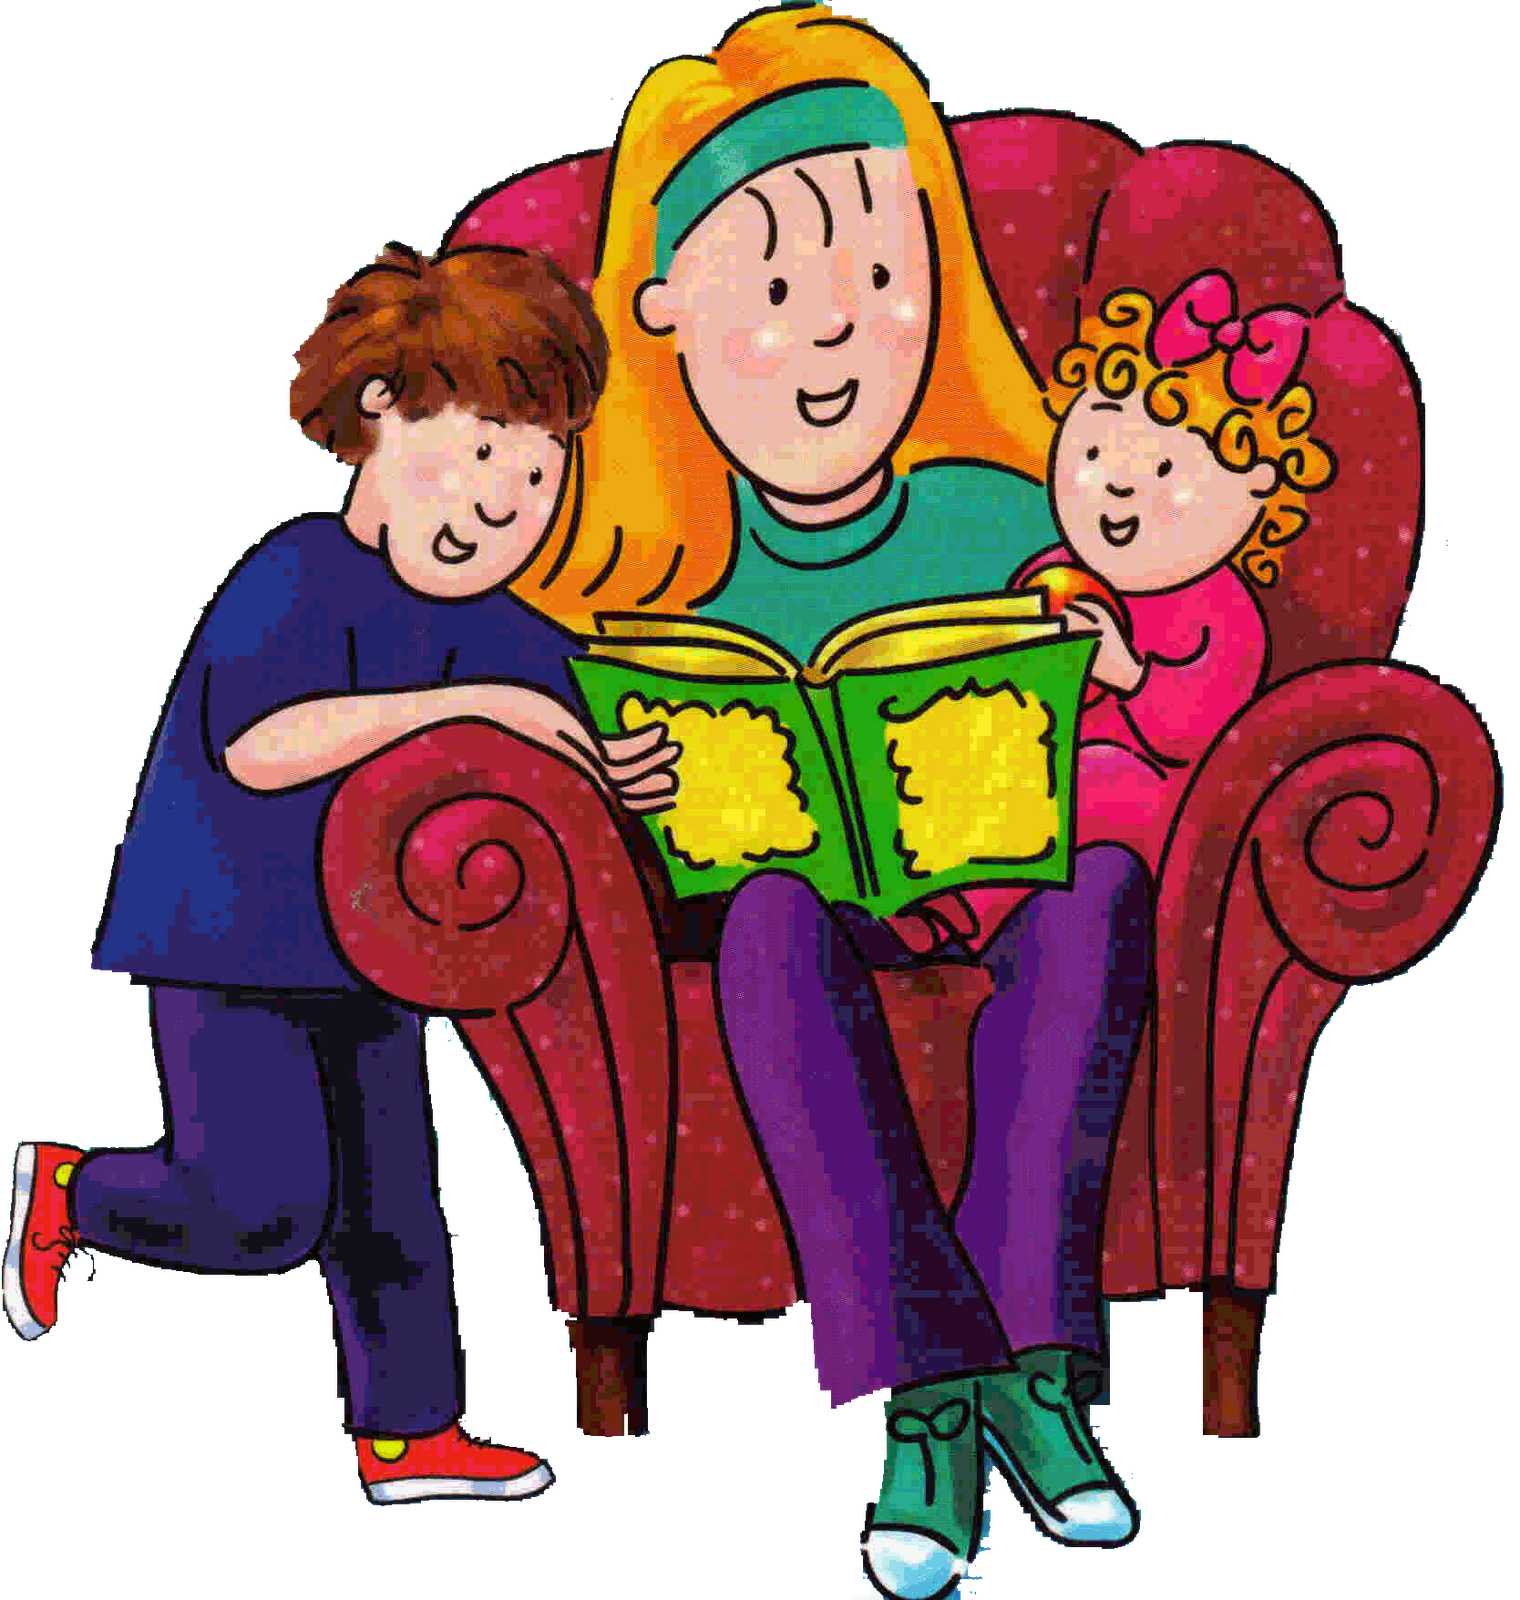 Leaving the house clipart royalty free Babysitting clipart leaving house FREE for download on rpelm royalty free